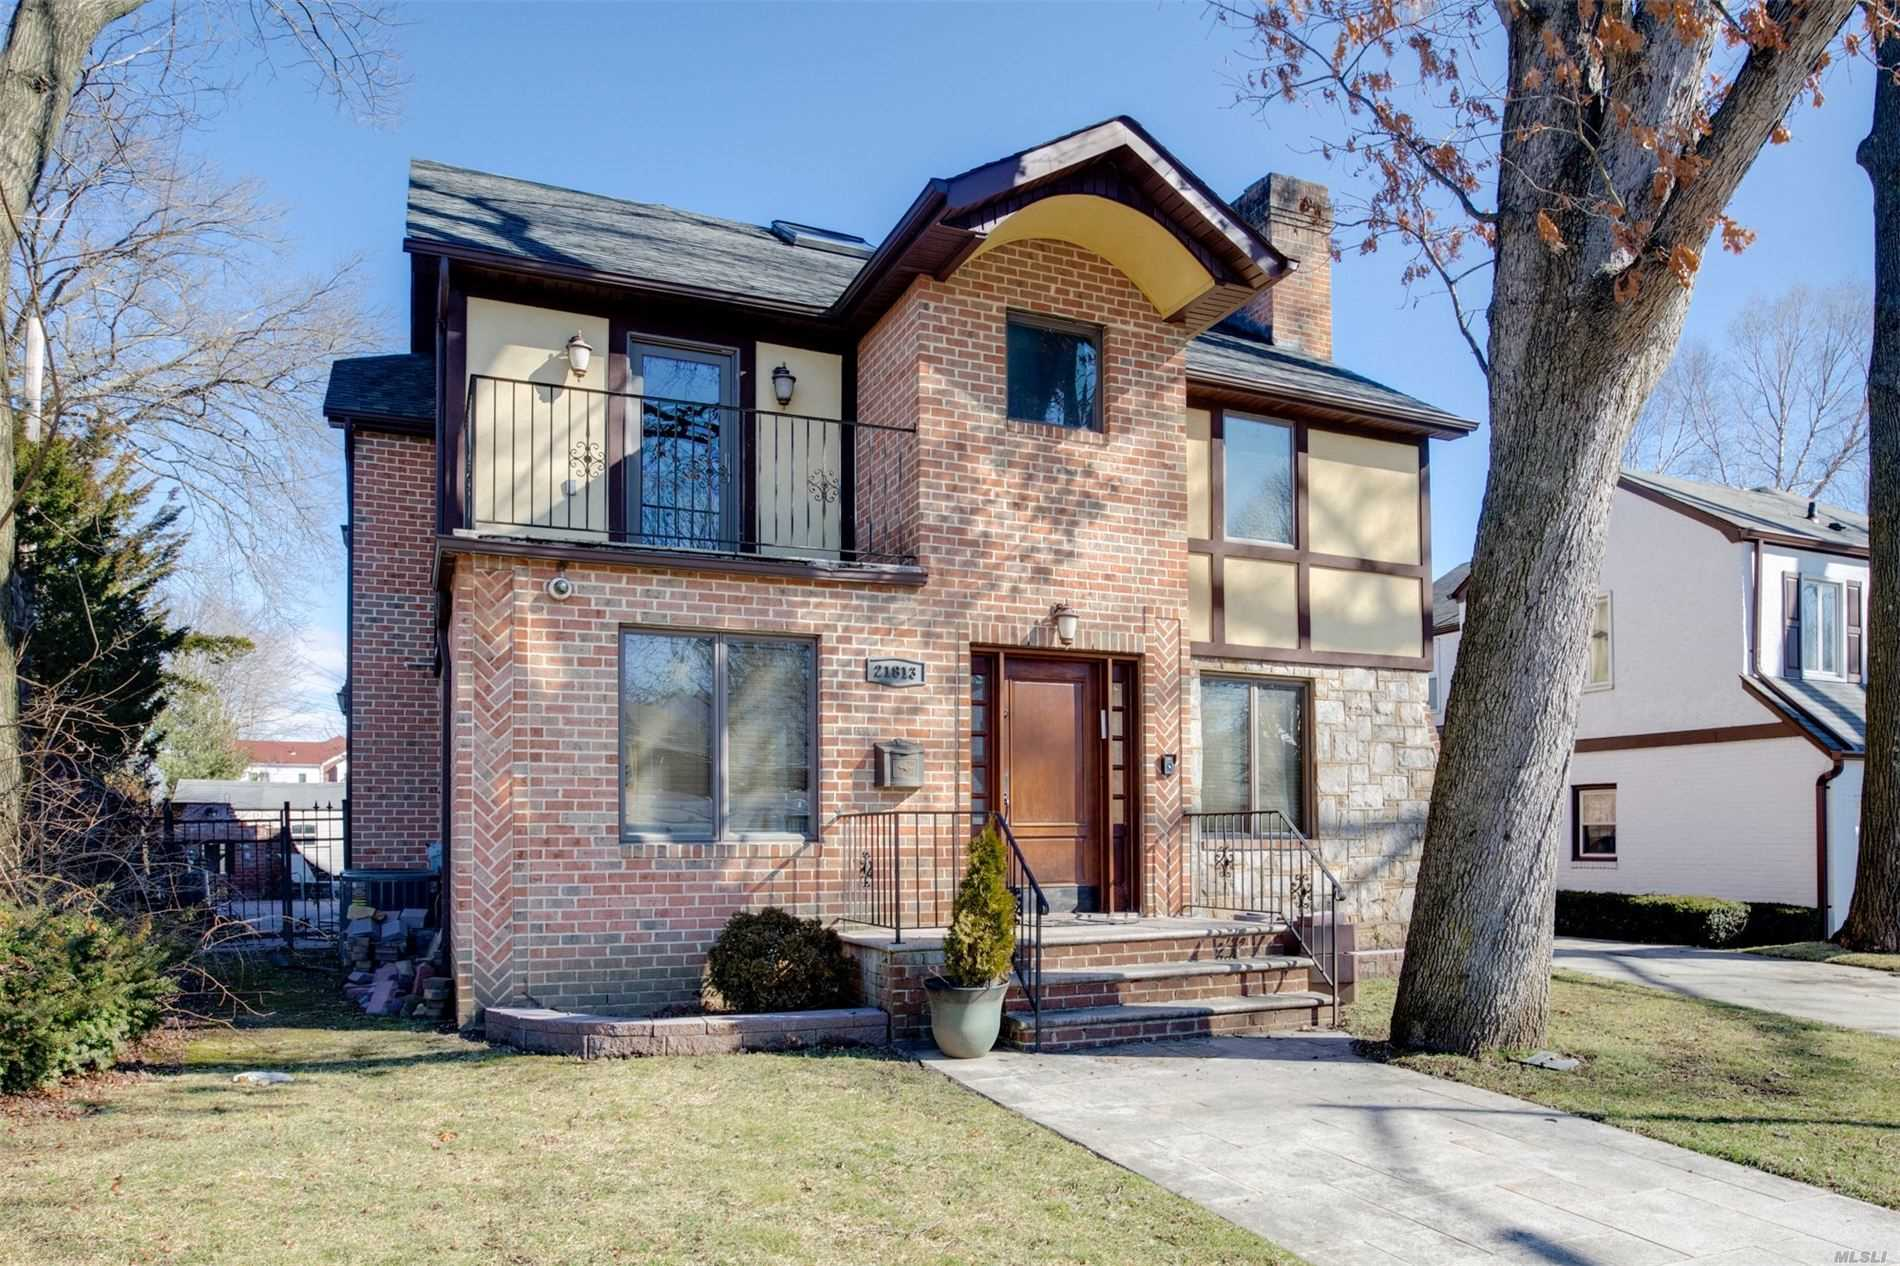 Residenziale in 218-13 82 Ave, Hollis Hills, NY ,11427